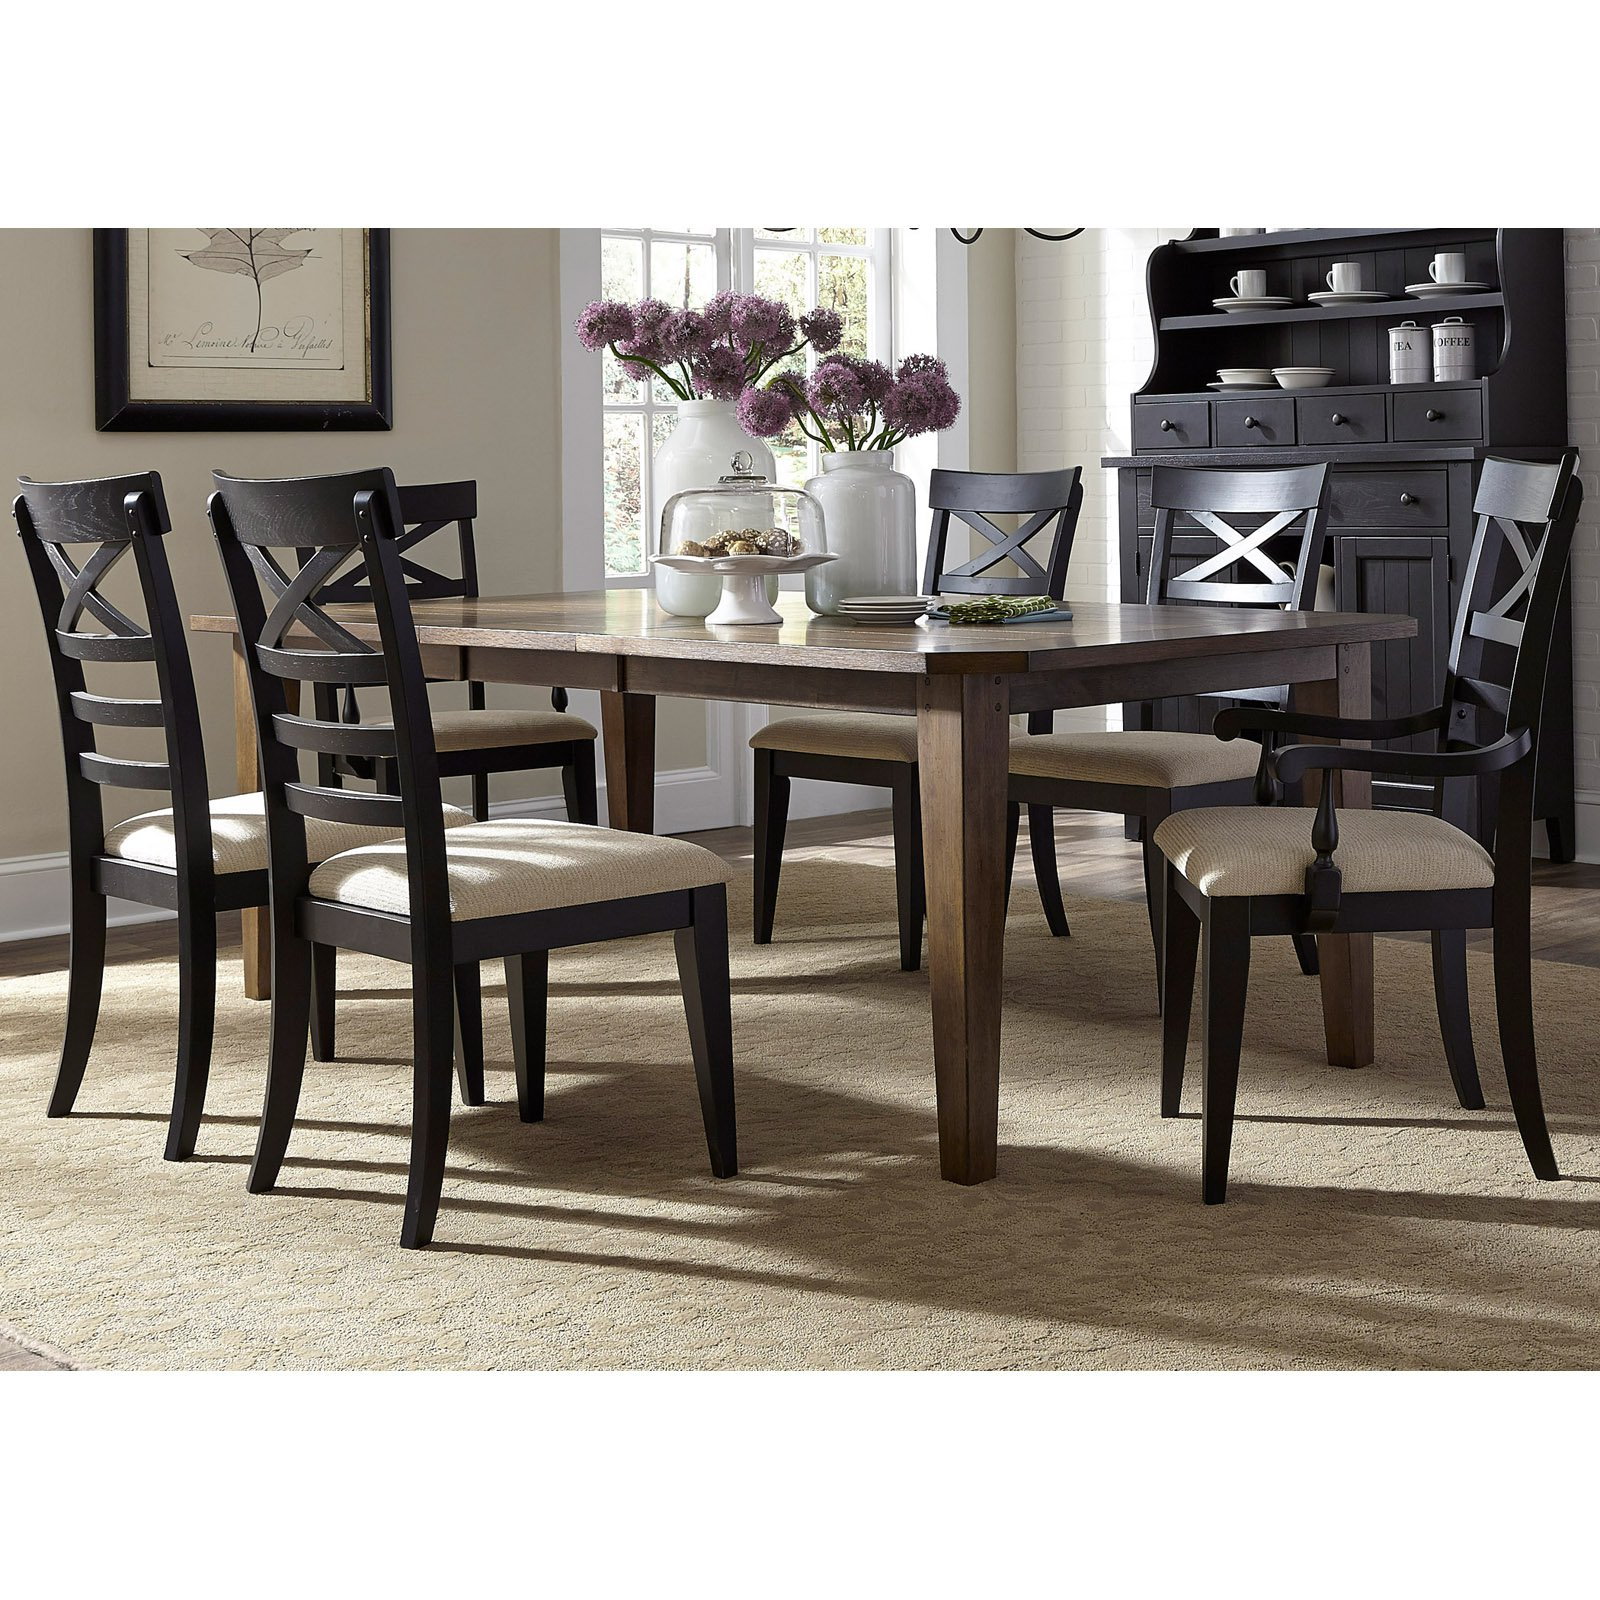 Liberty Furniture Industries Hearthstone 7 Piece X Back Rectangular Extension Dining Table Set